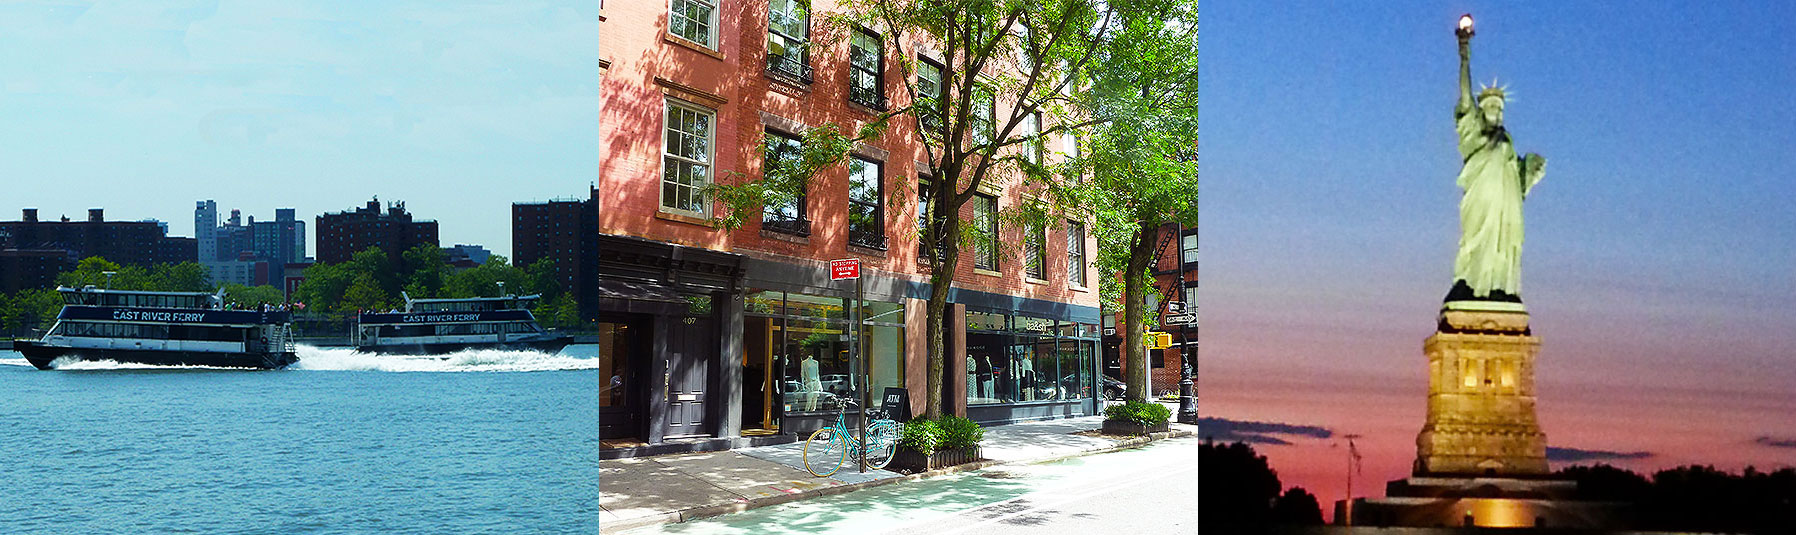 Private Shopping Tours takes you to Brooklyn, the West Village and iconic New York Shopping